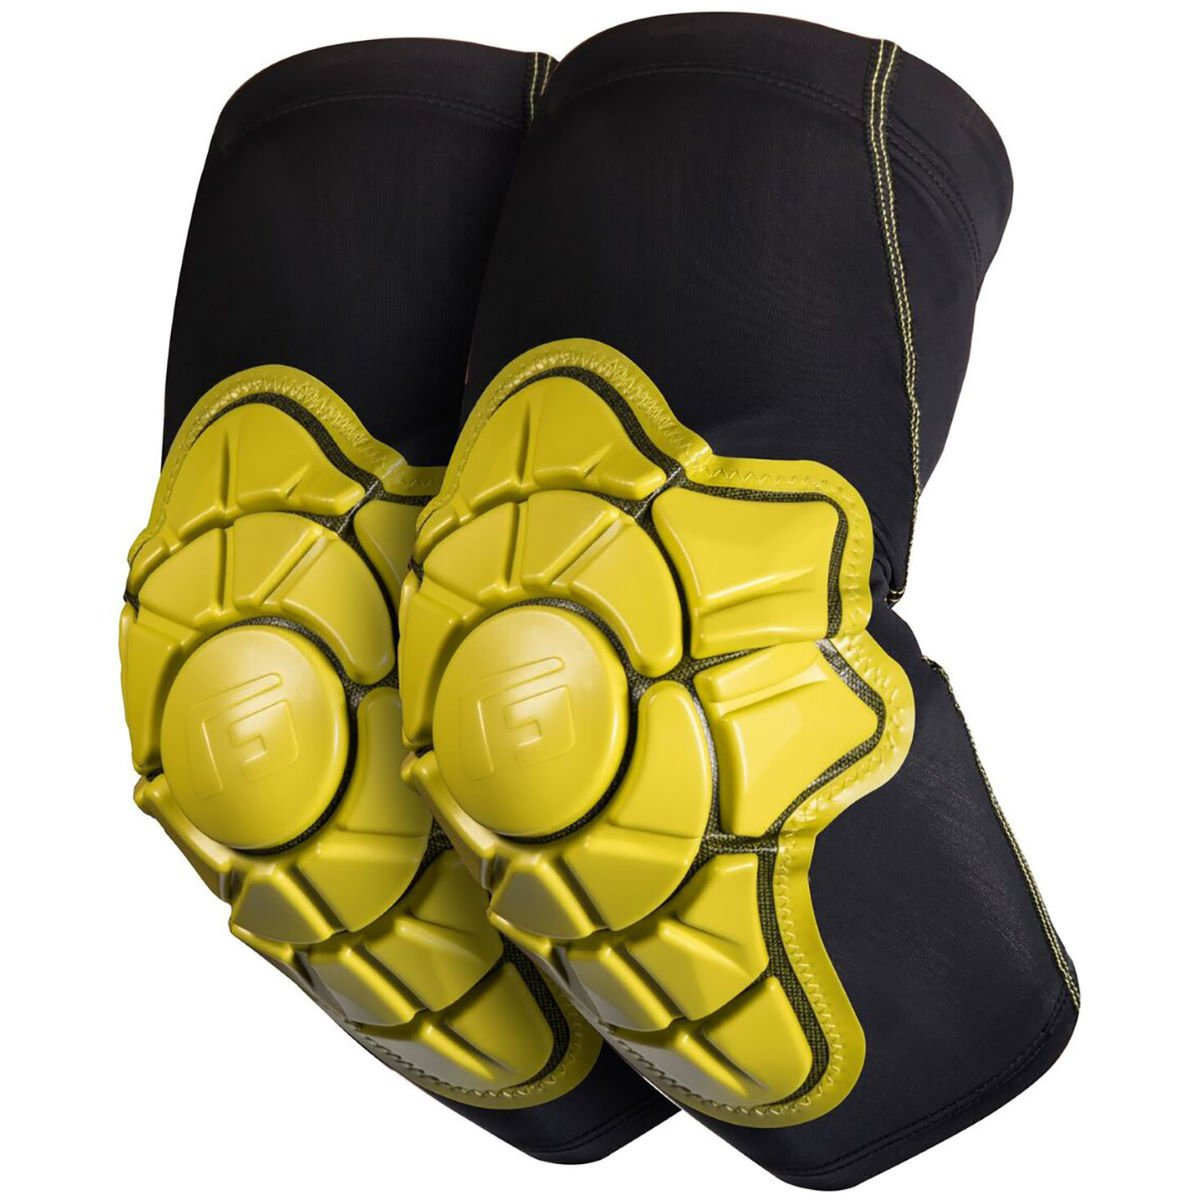 G-Form Pro-X Elbow Pads(1 Pair), Iconic Yellow, Adult Medium